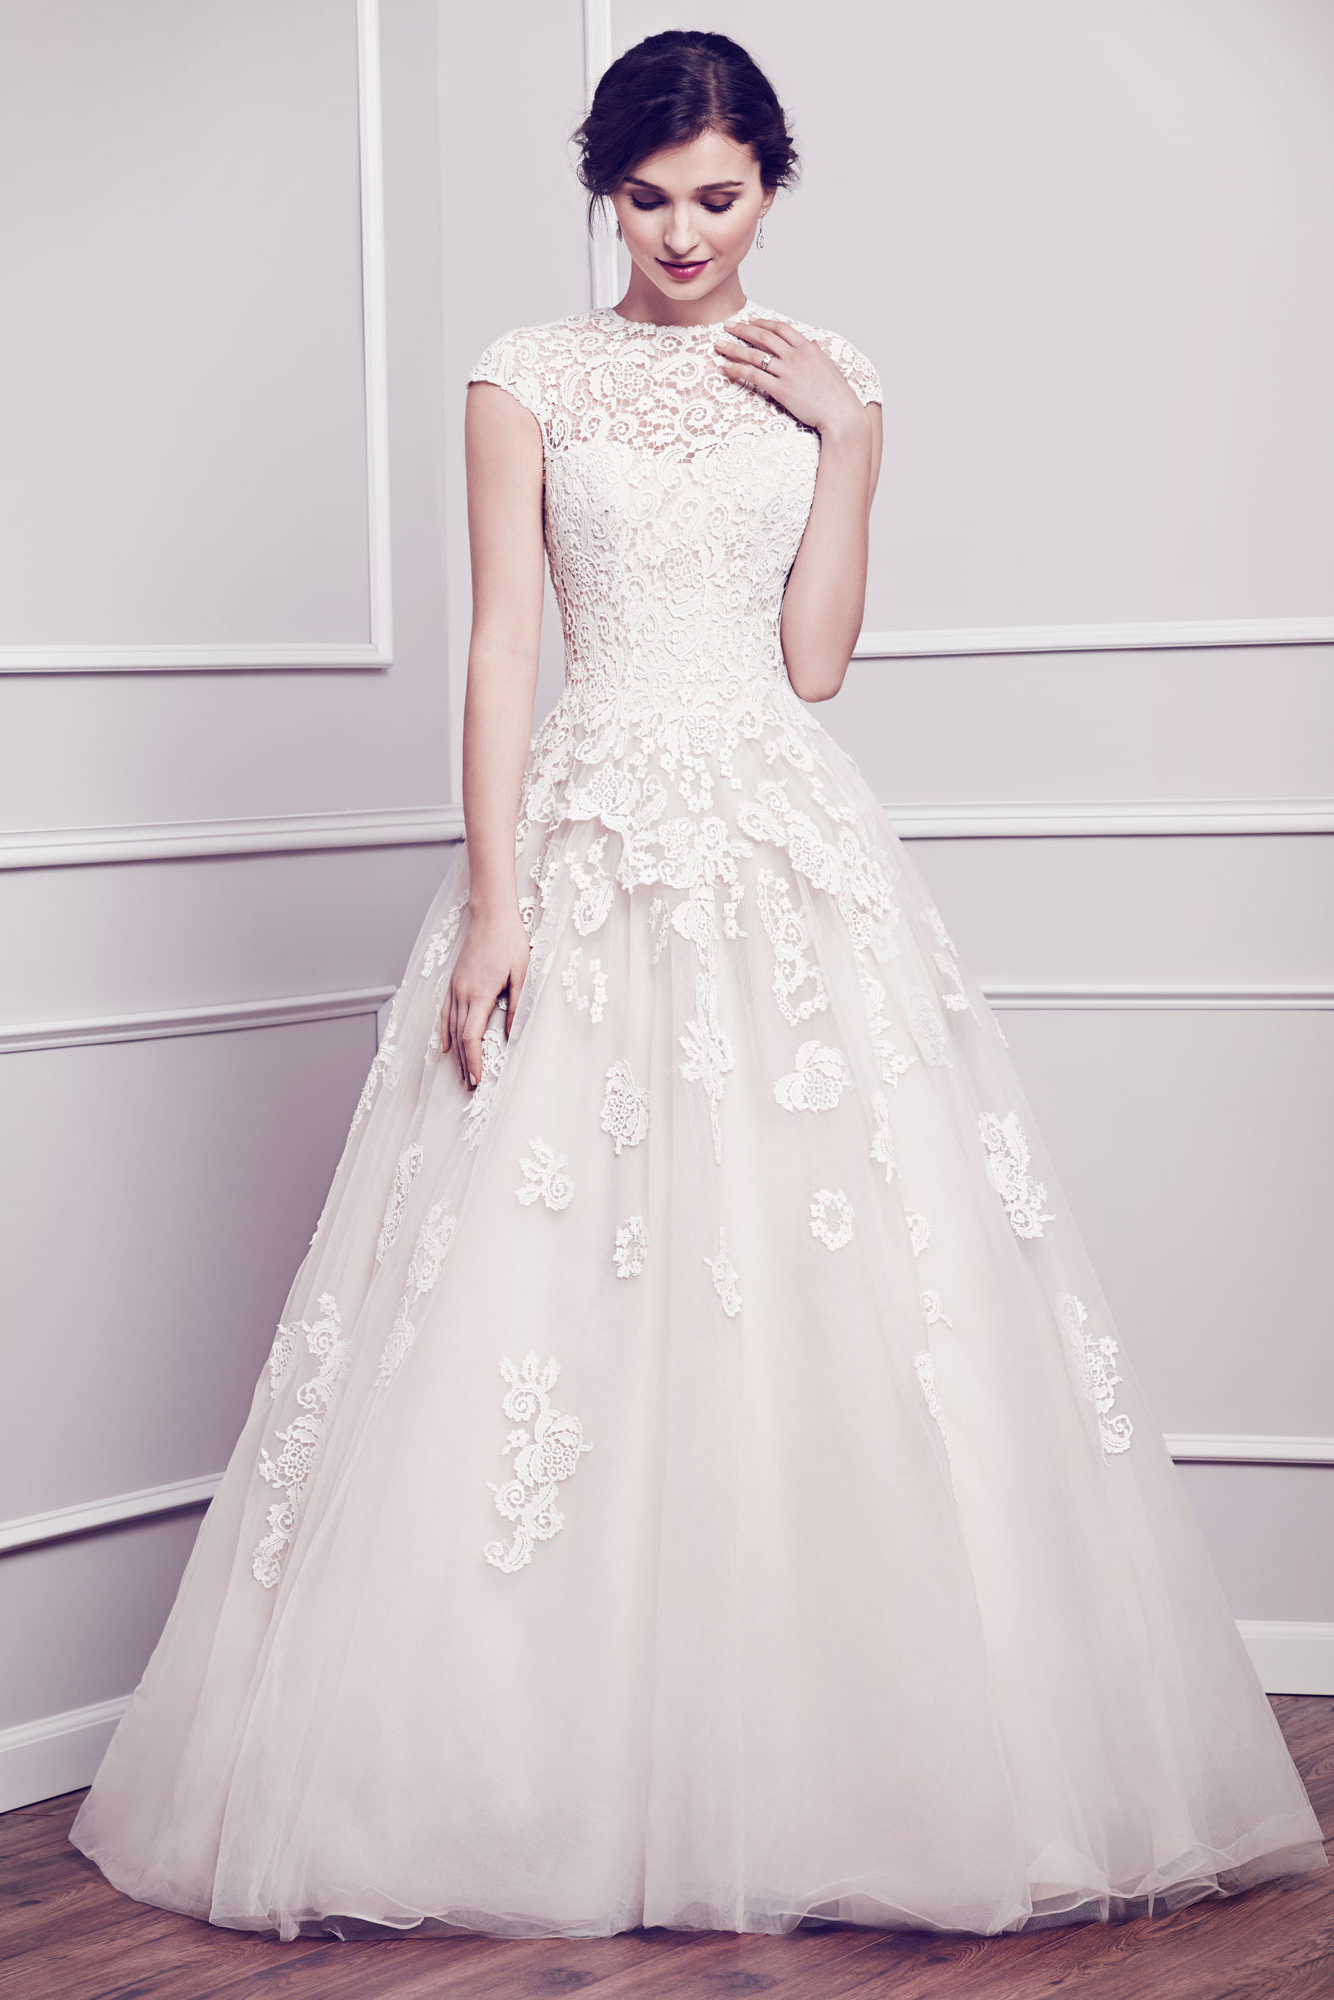 Bride Gowns The 25 Most Pinned Wedding Dresses Of 2015 Huffpost